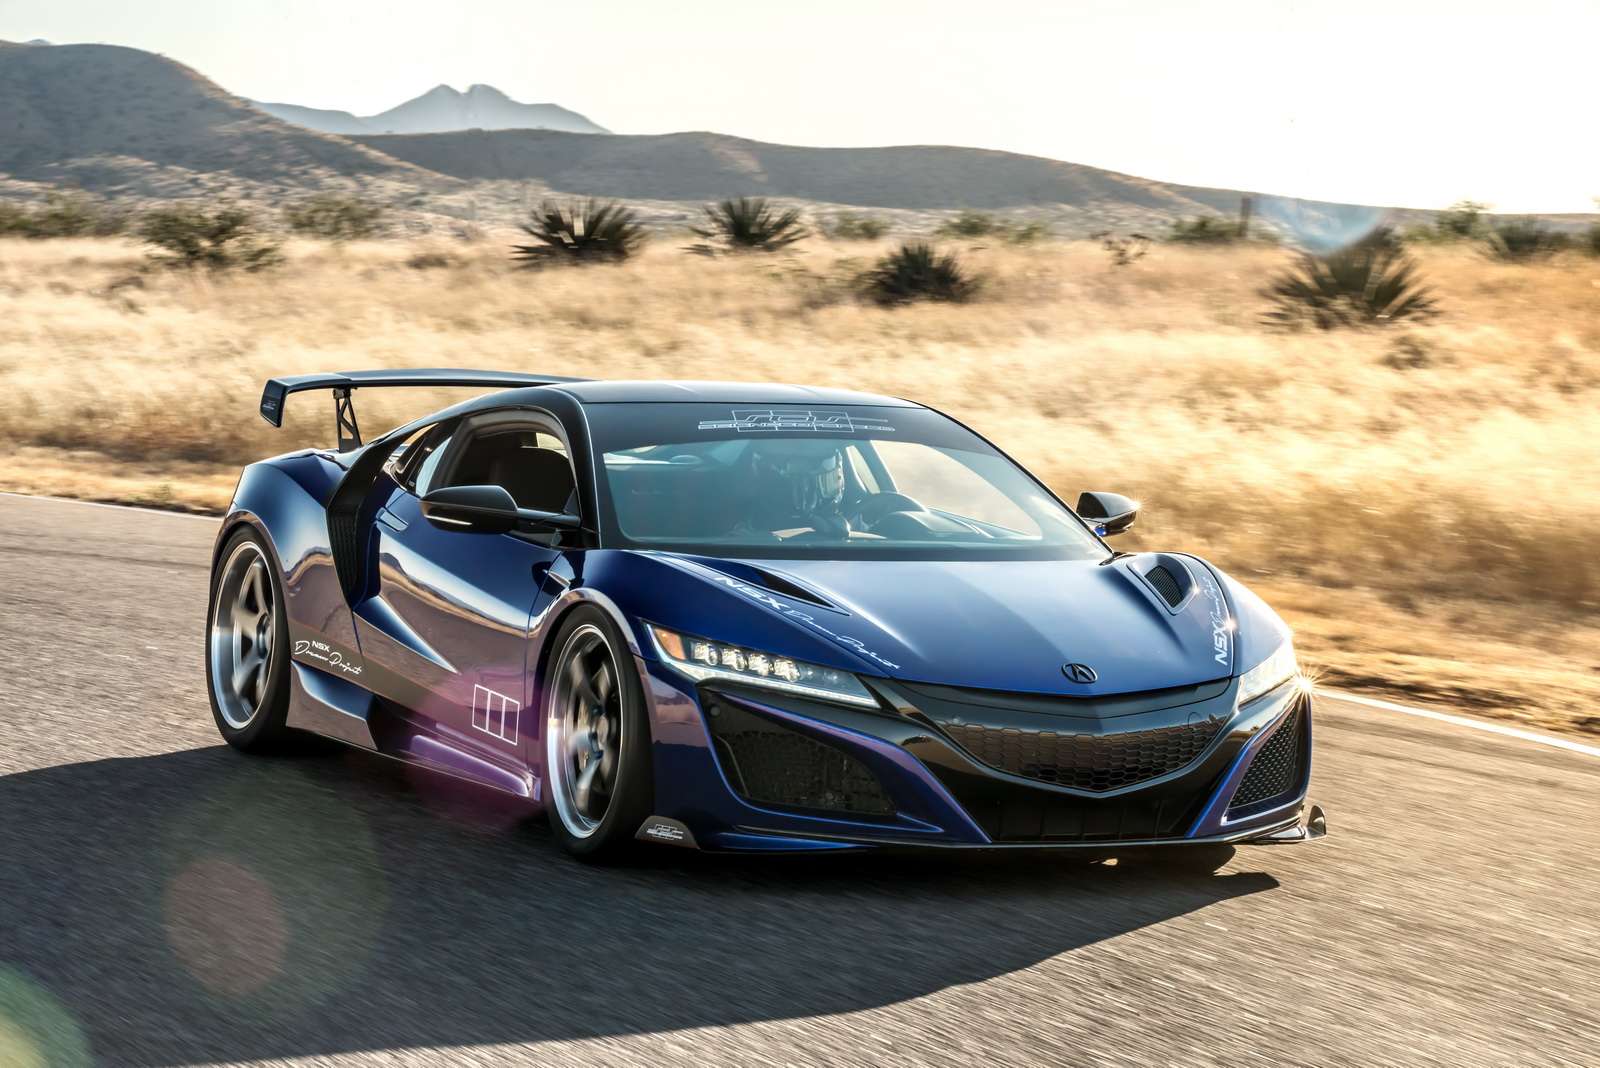 """Debuting at SEMA, the second generation Acura NSX """"Dream Project,"""" created by acclaimed NSX specialist, ScienceofSpeed, features subtle enhancements to the supercar's powertrain, suspension and styling to elevate performance."""